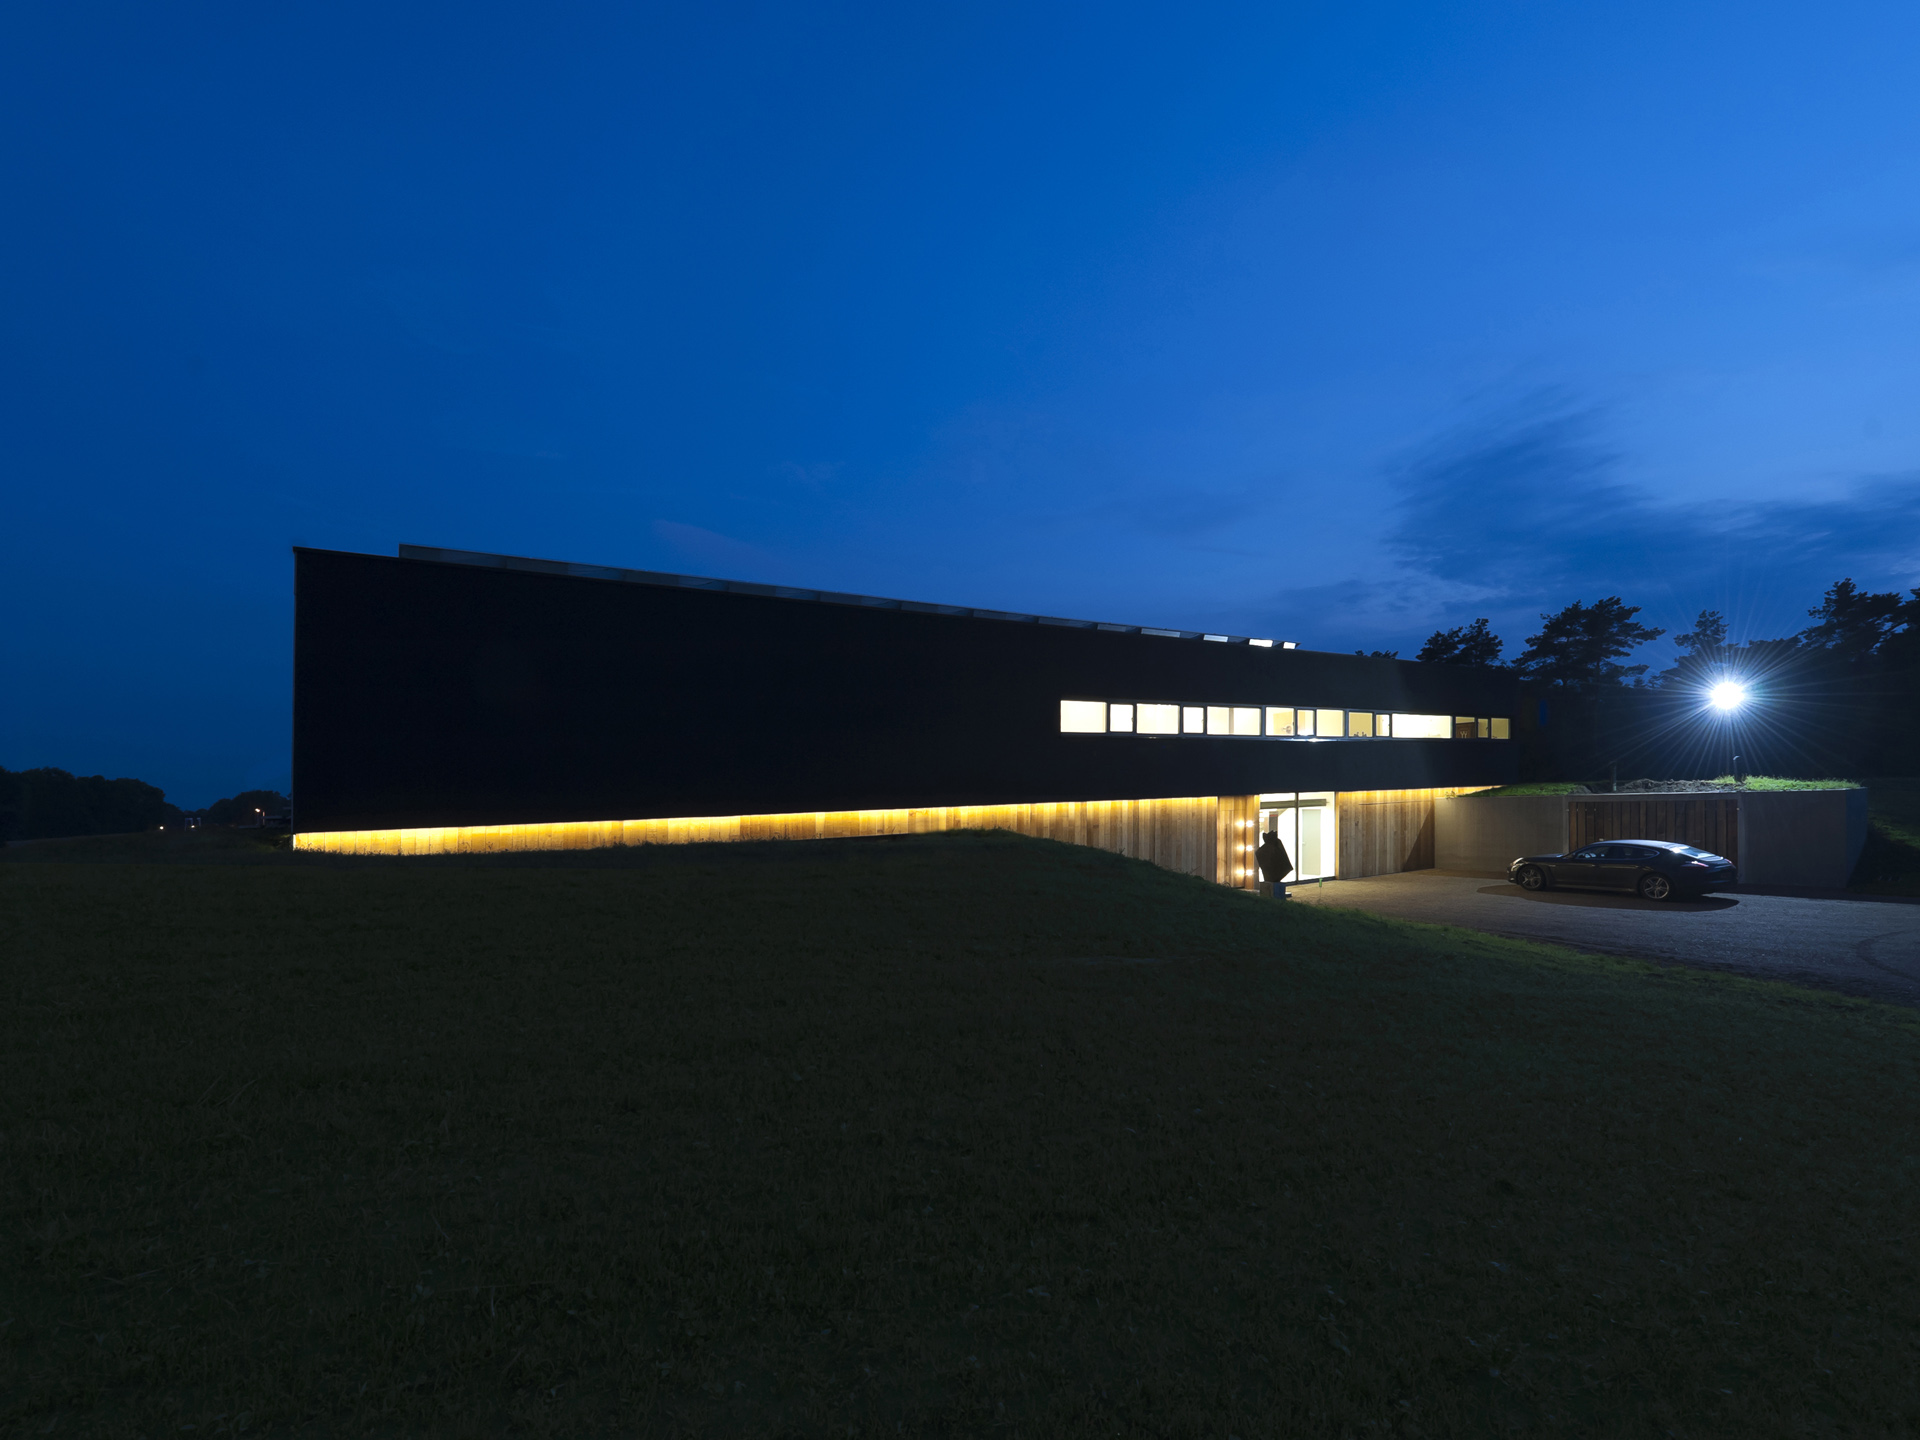 The front facade, with 37 meters of atmospheric lighting